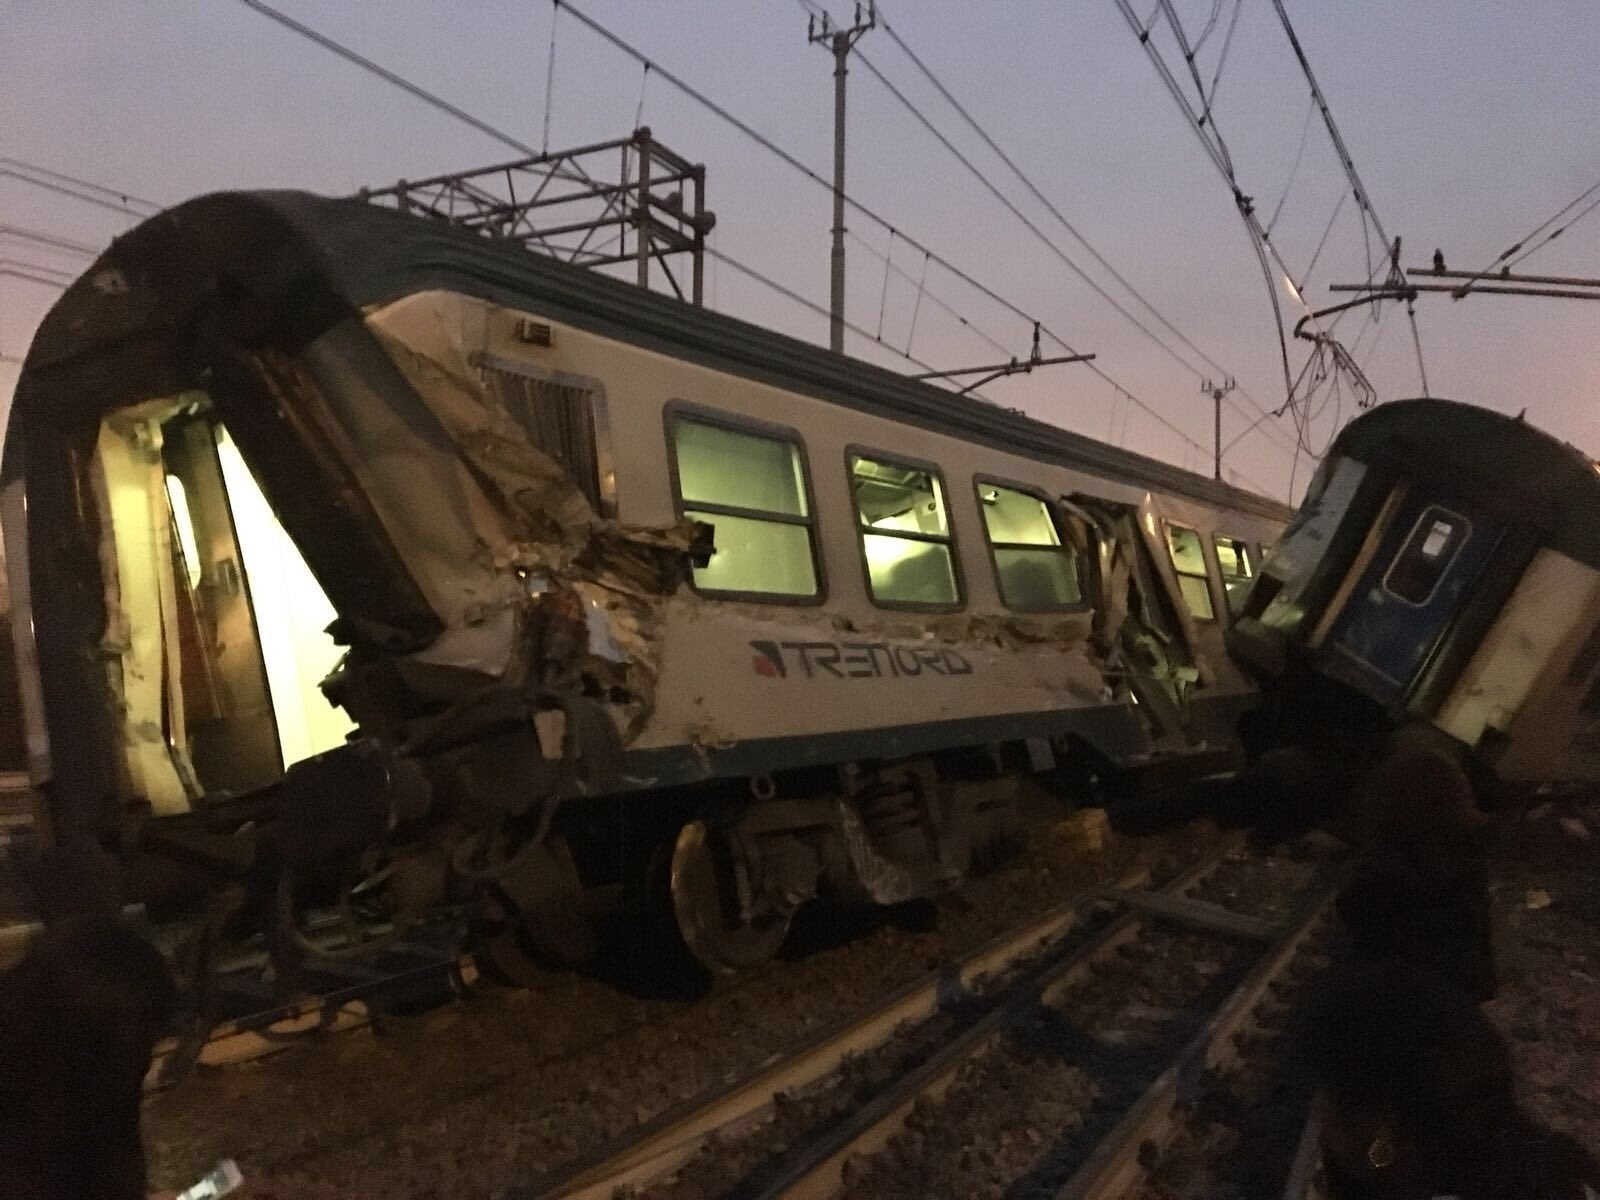 Italian train derails near Milan, 3 dead, many injured